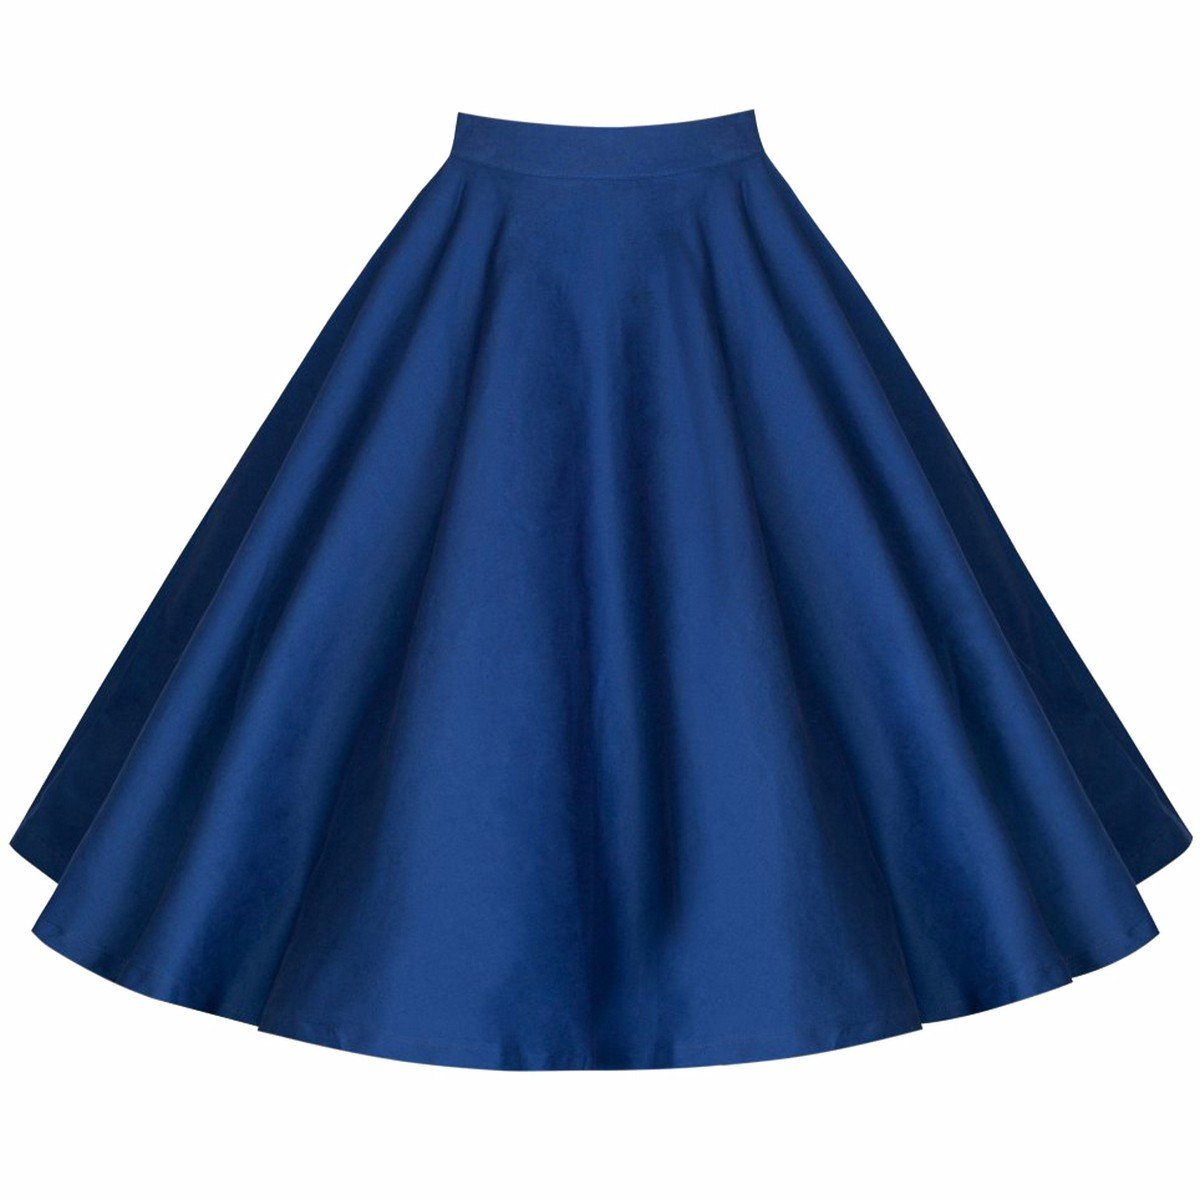 c863c76e74 Samtree Women's Vintage 50s Style Polka Dots Pleated Full Circle Swing  A-Line Skirt(Asia XXL, Blue) at Amazon Women's Clothing store: